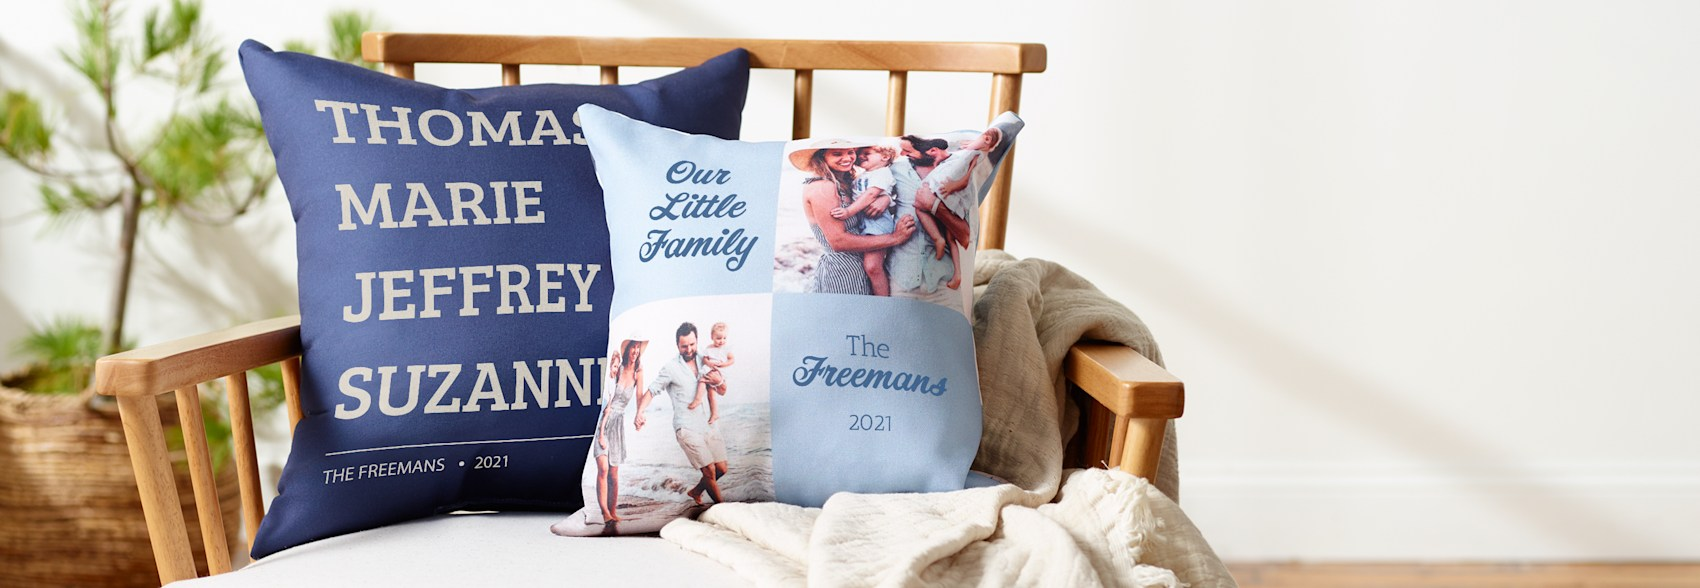 personalized pillows with photos and text